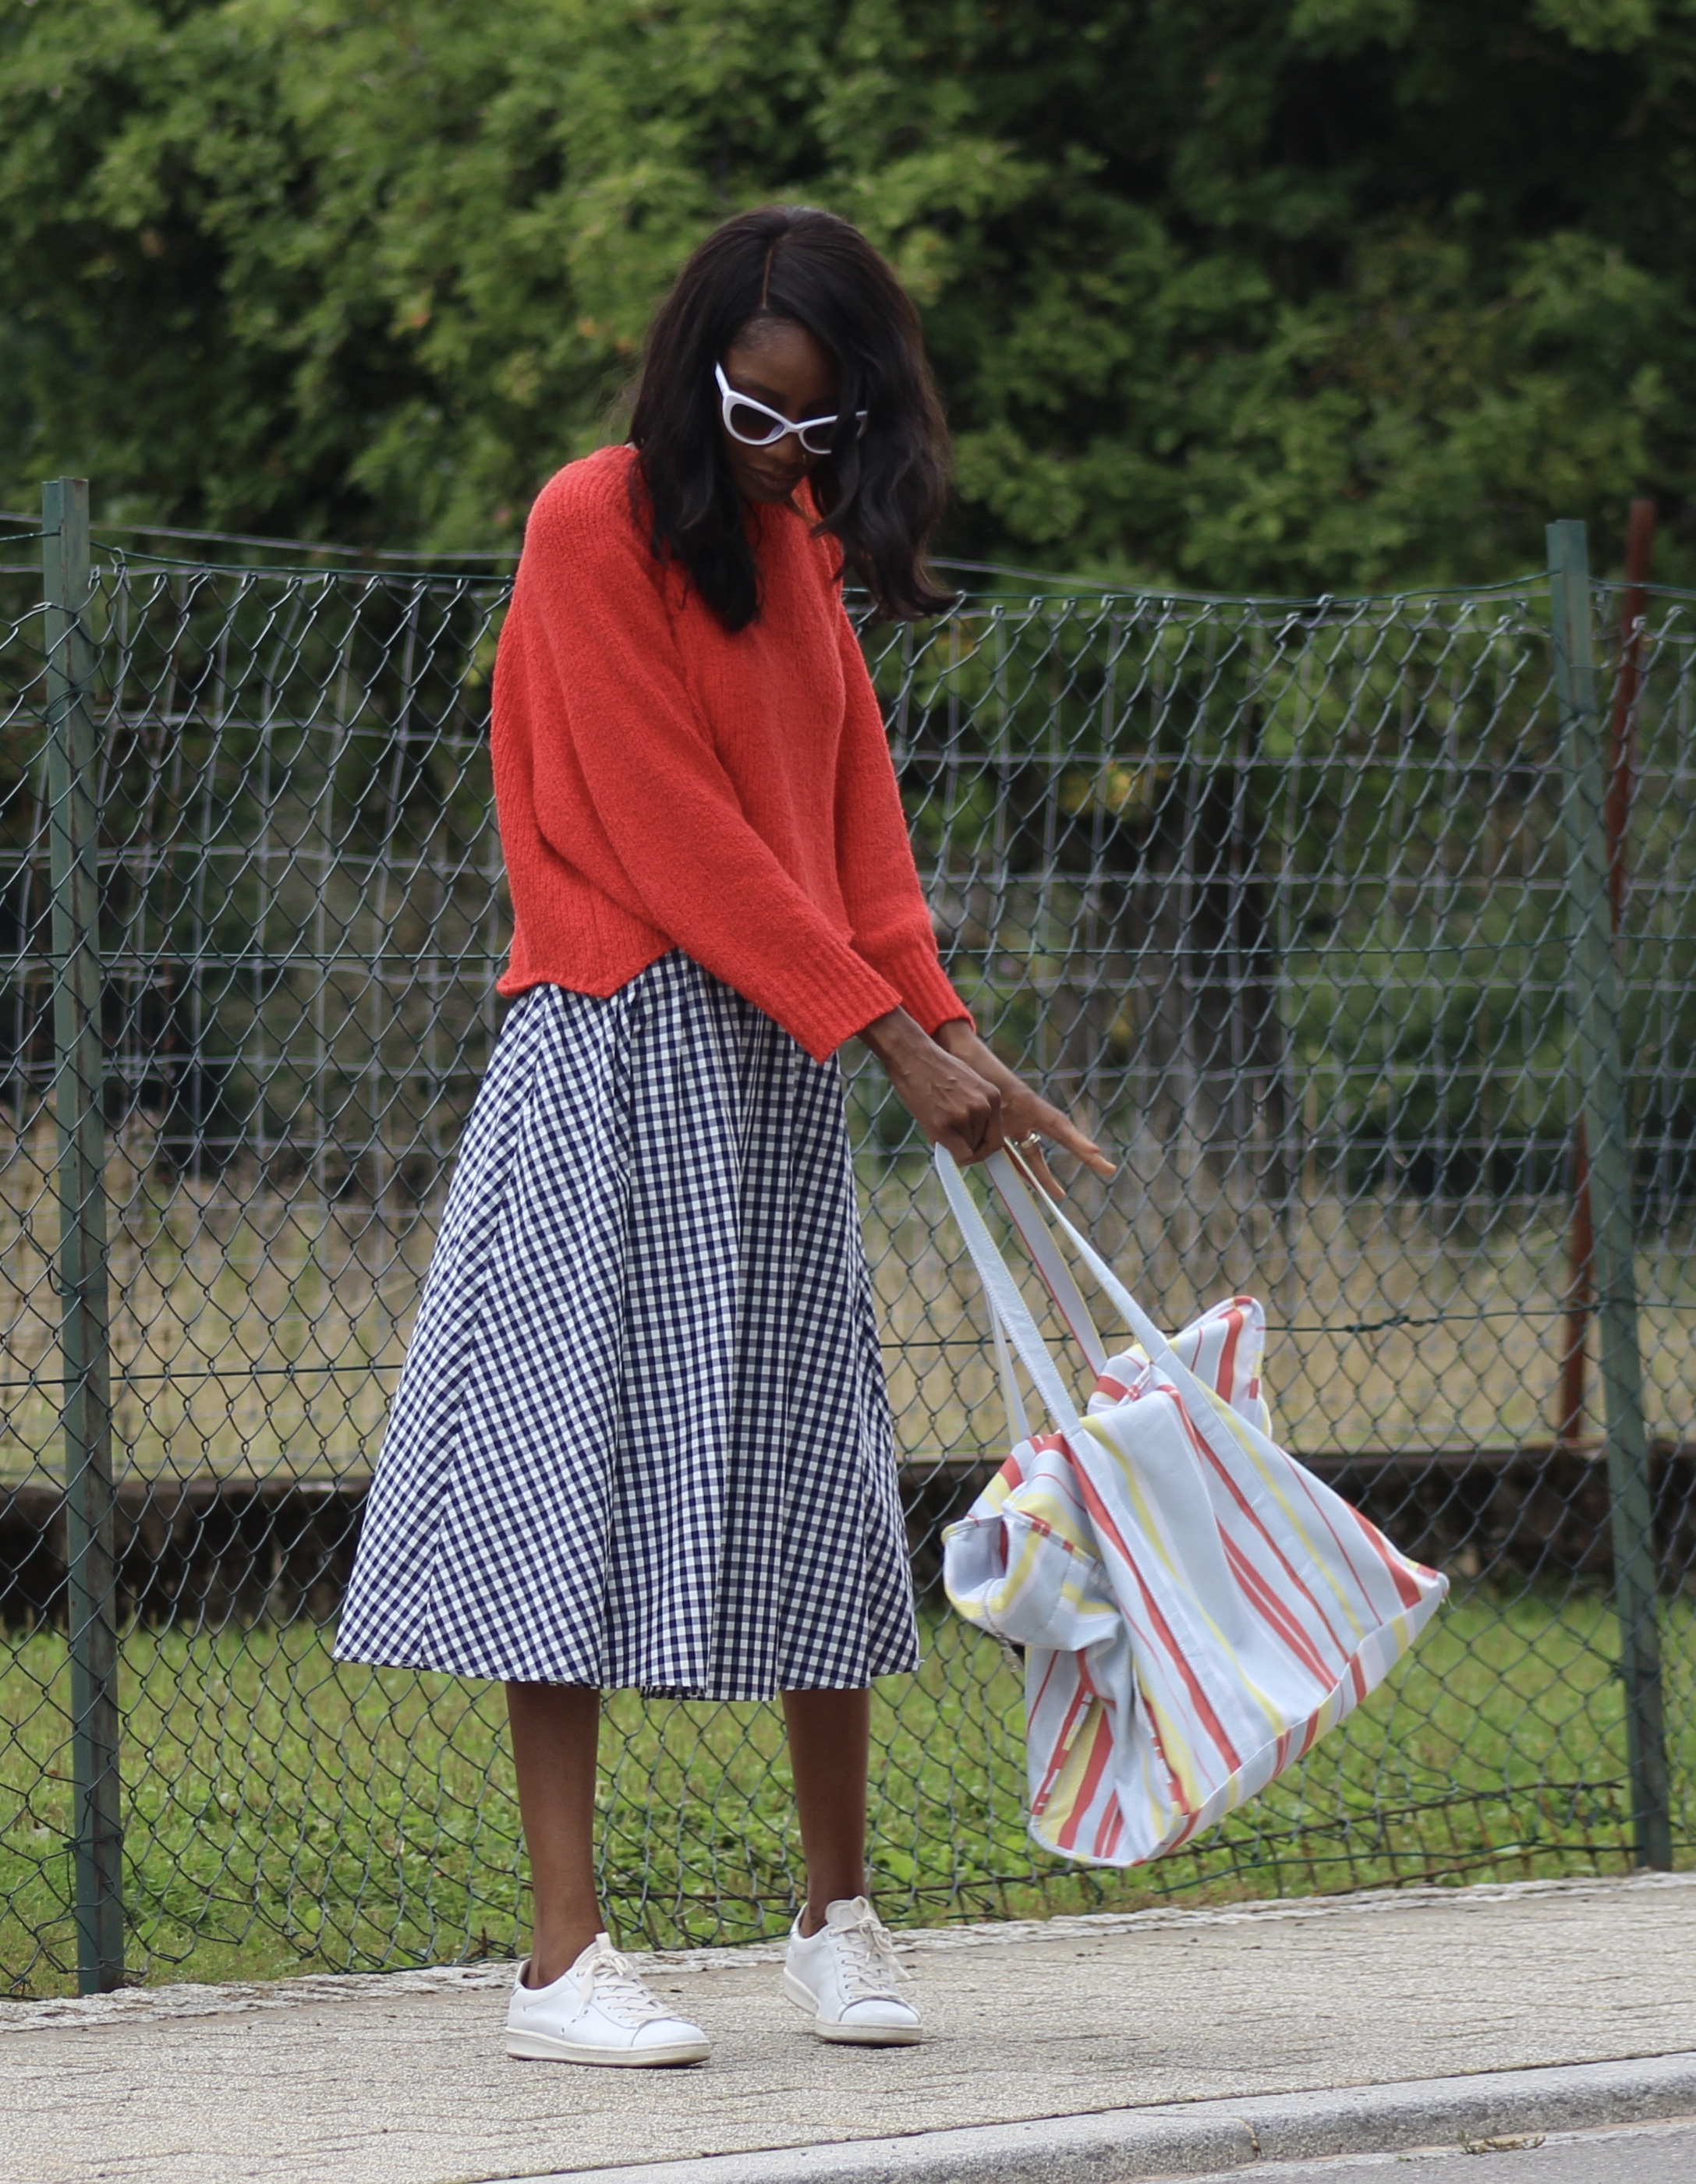 gingham skirt red jumper white sneakers tote bag